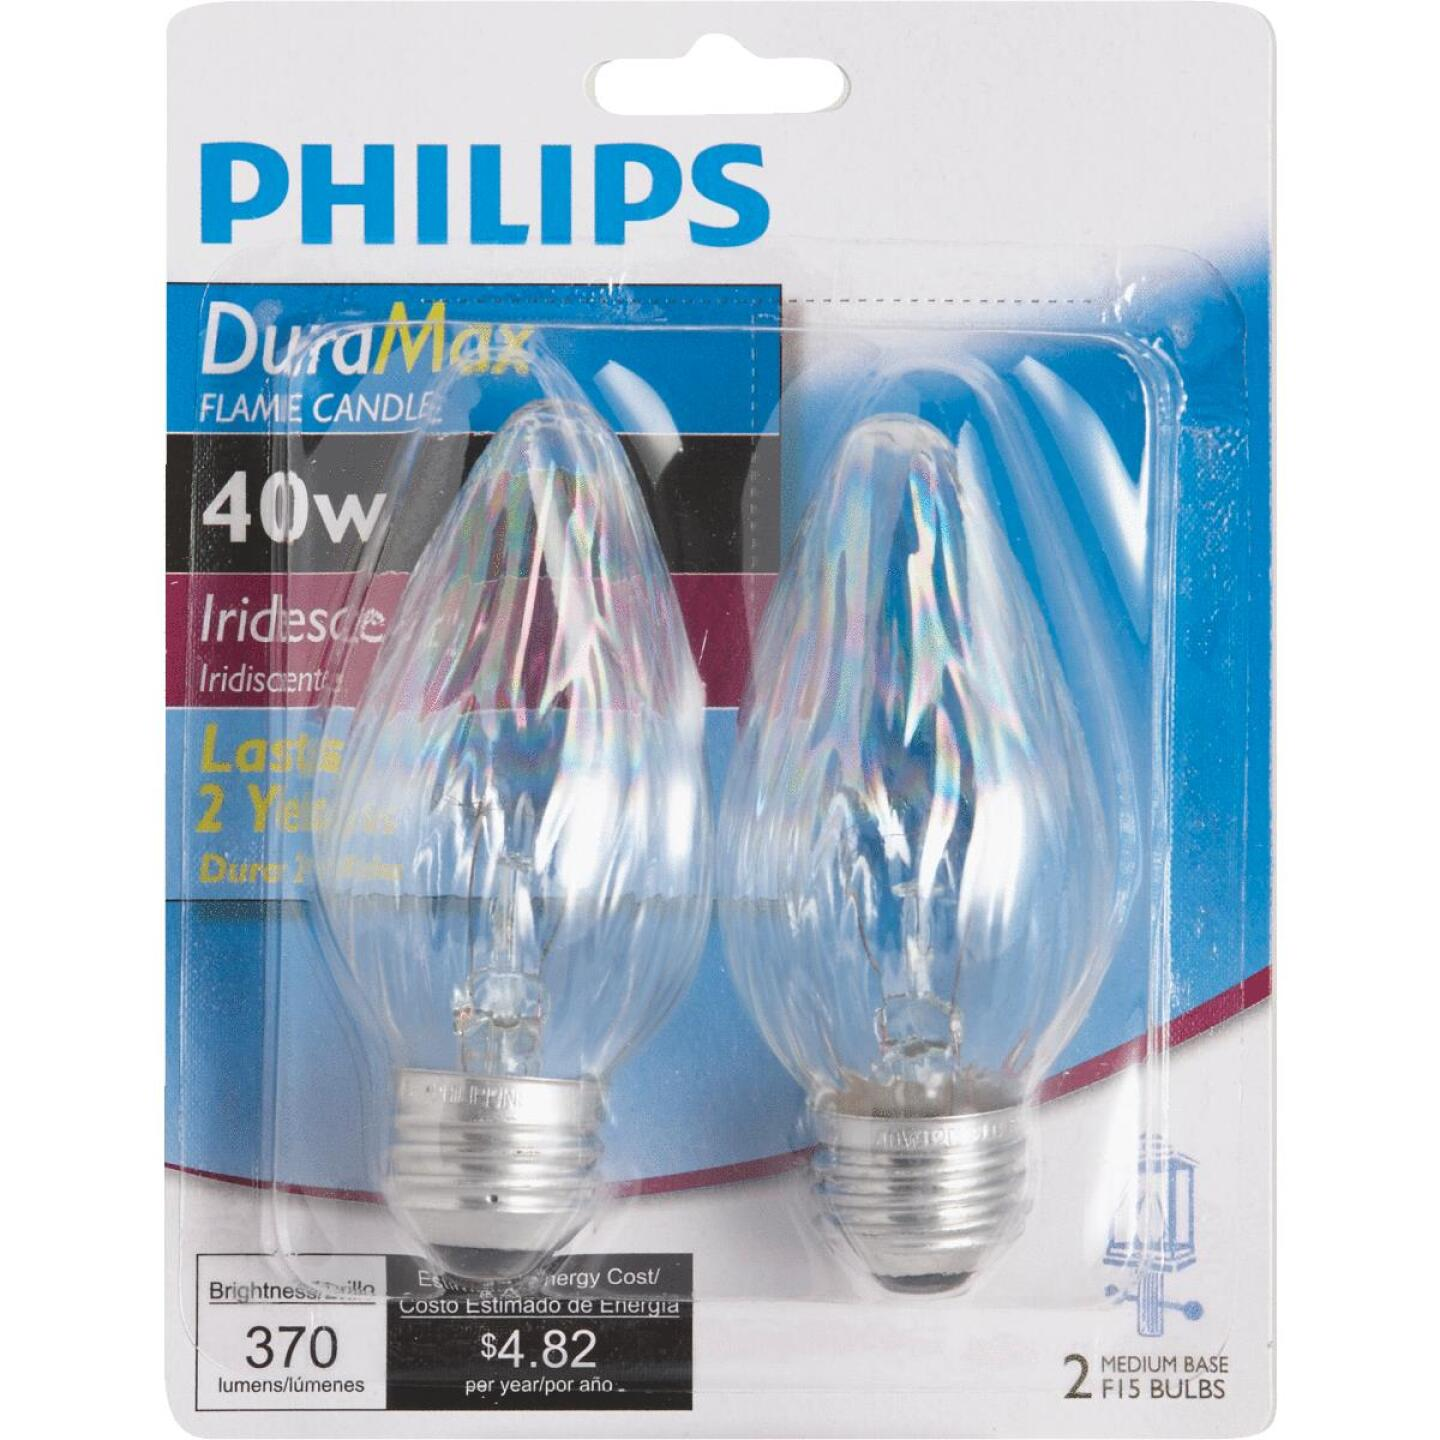 Philips DuraMax 40W Auradescent Medium F15 Incandescent Flame Candle Light Bulb (2-Pack) Image 2